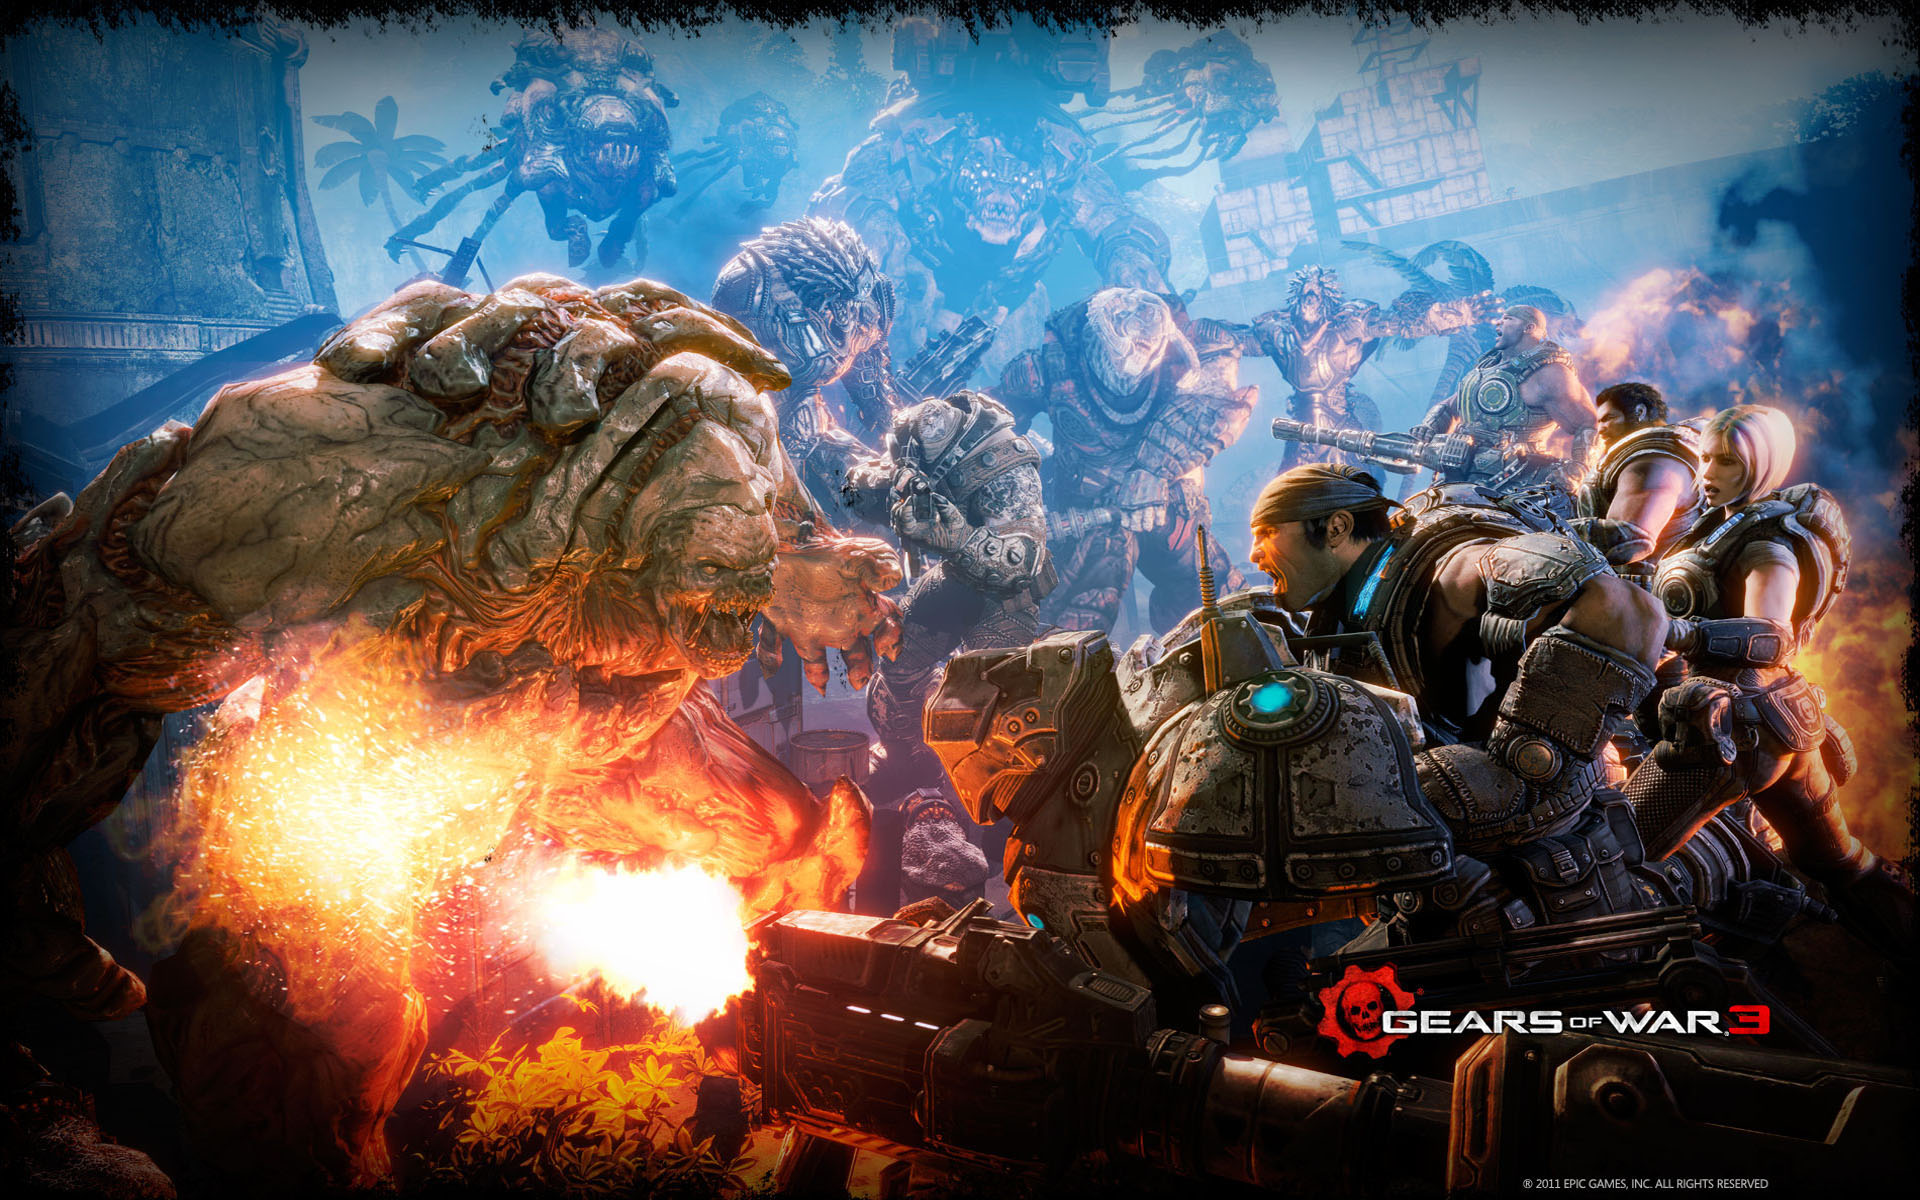 Resolution Wallpapers Pictures Gears of War 3 Wallpapers 1920x1200 1920x1200